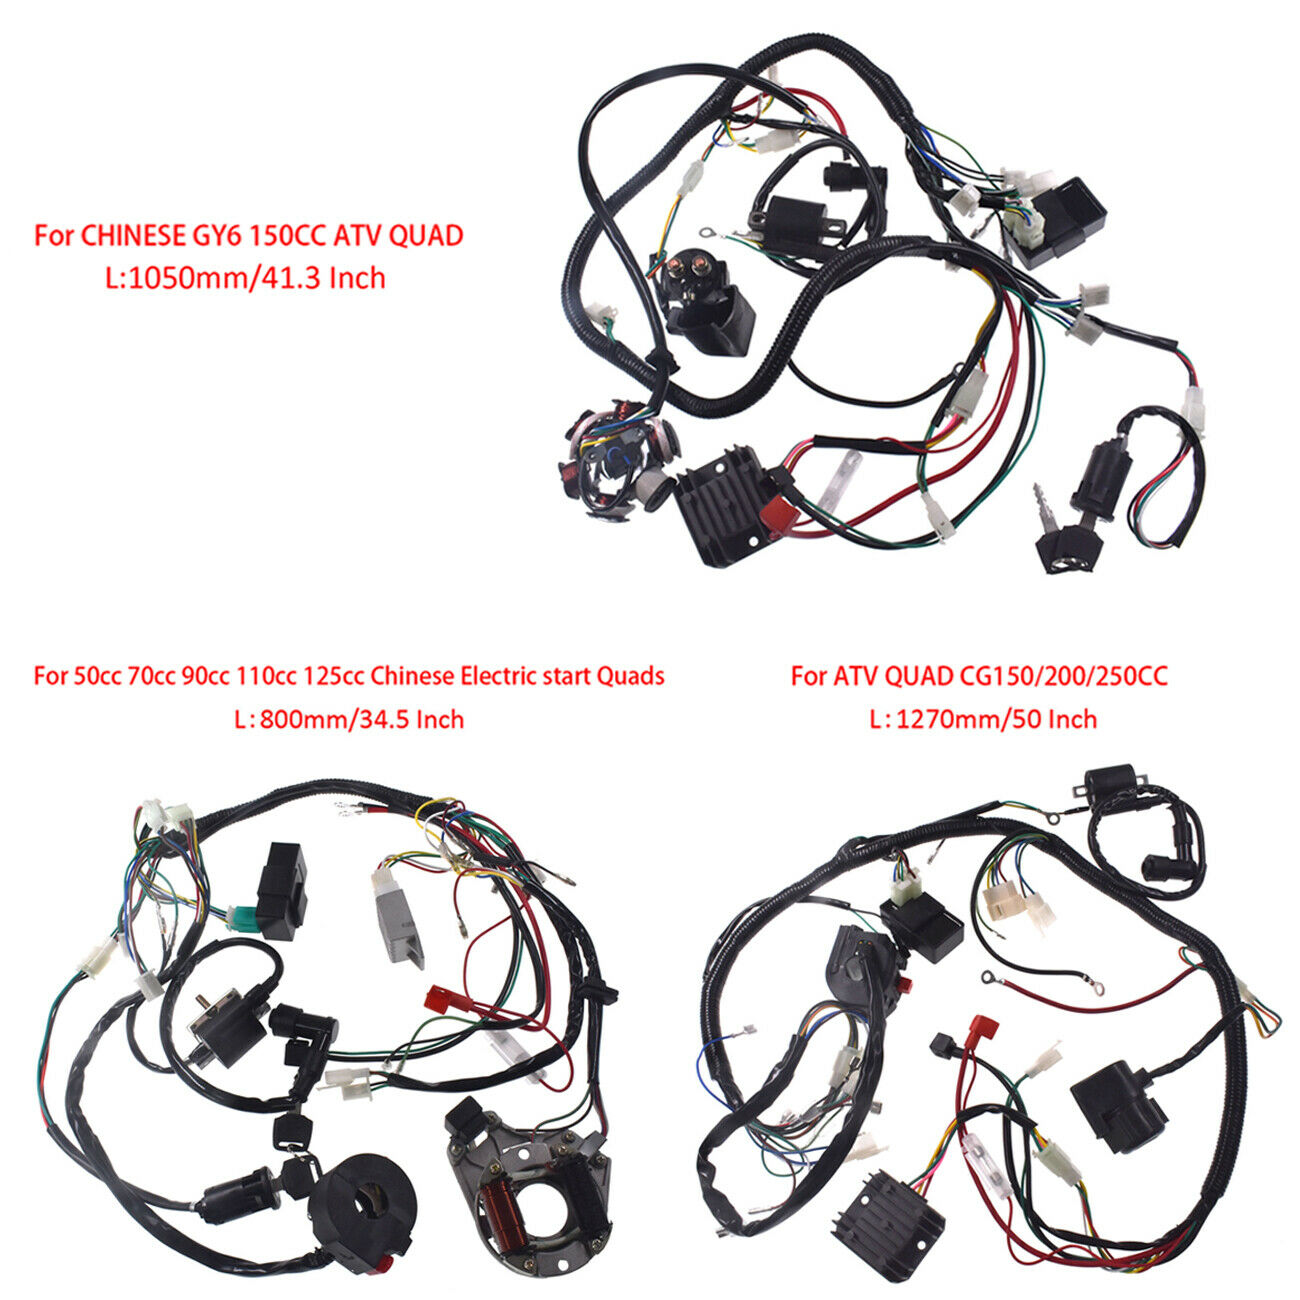 Wire Harness Assembly Wiring Kit For  GY6 150cc   50-125cc ATV  CG150-250cc QUAD  save 60% discount and fast shipping worldwide